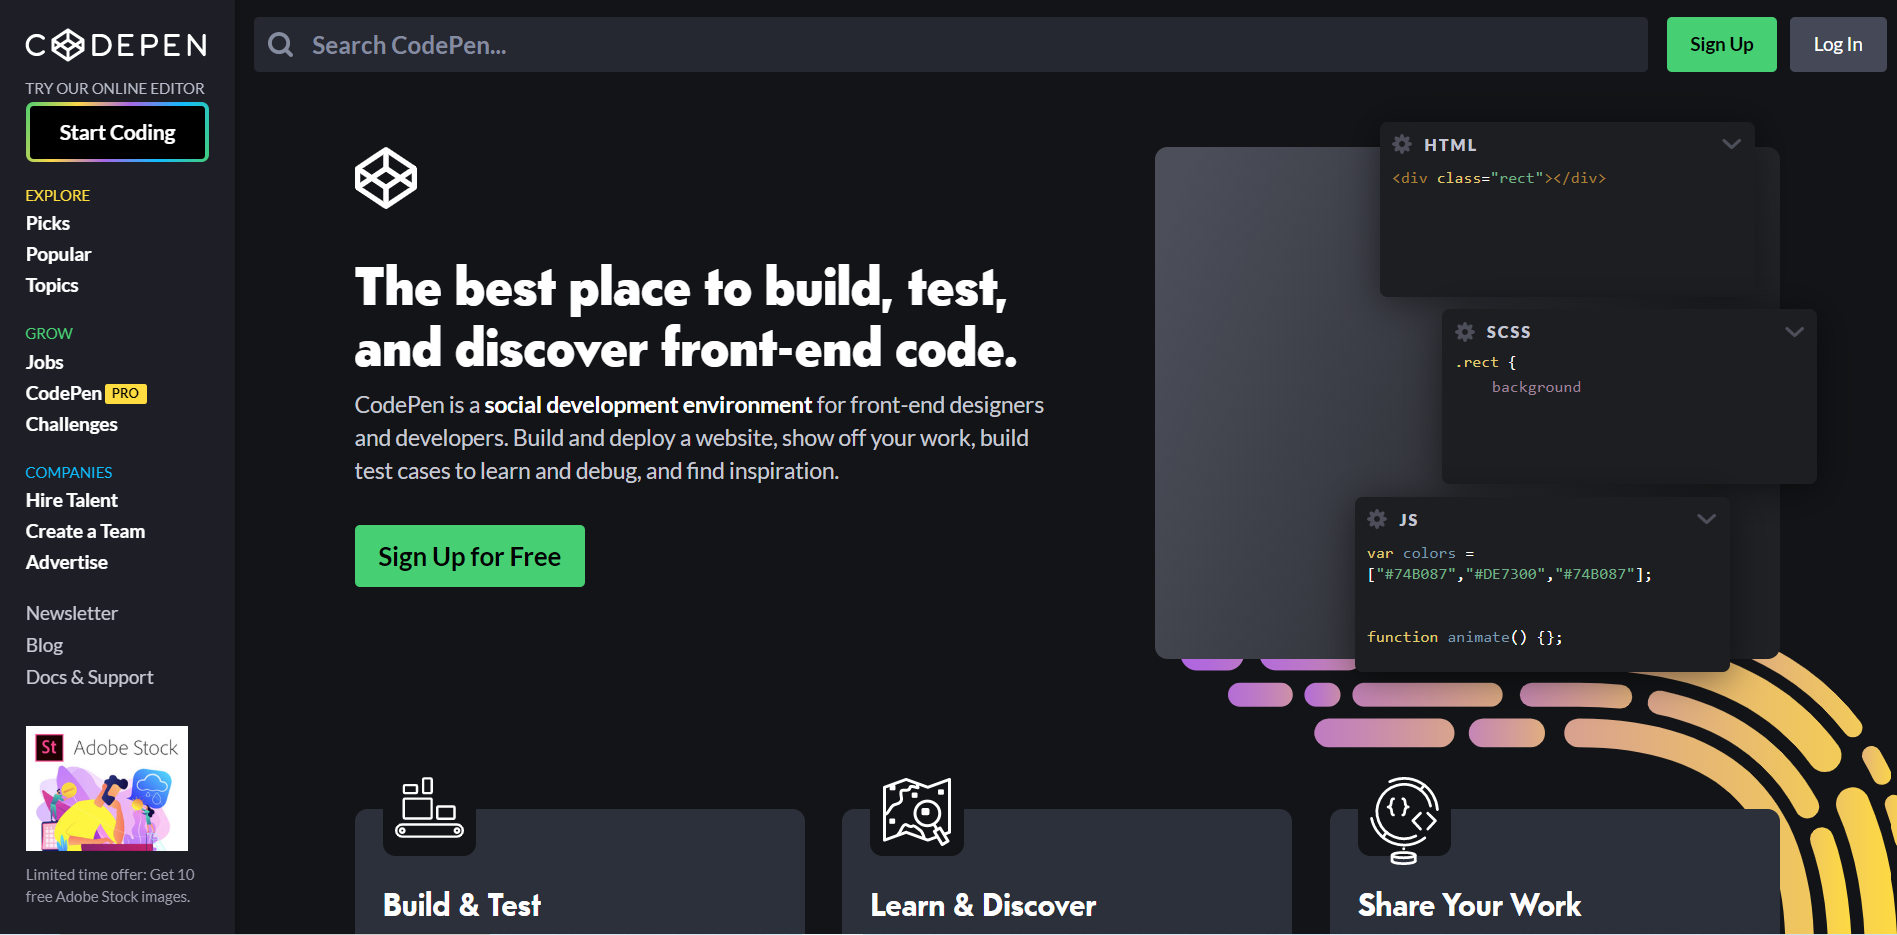 CodePen website